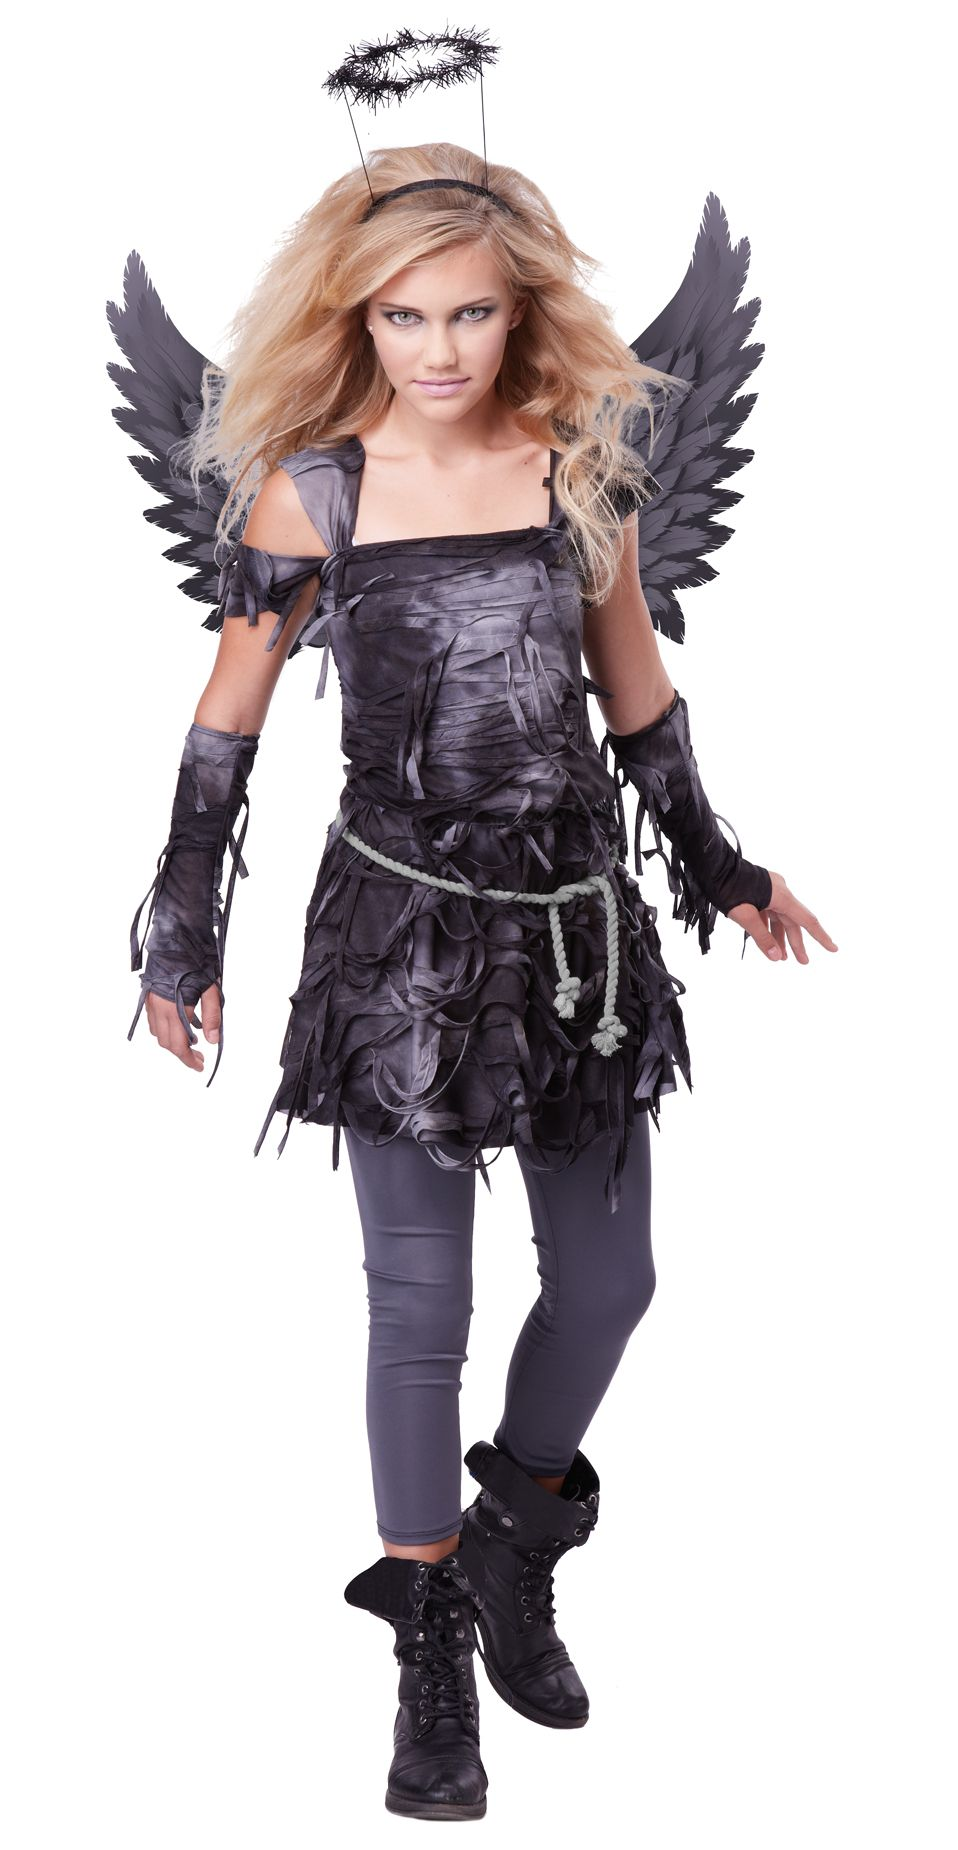 Spooky Angel Costume Fantasypartys Tween costumes